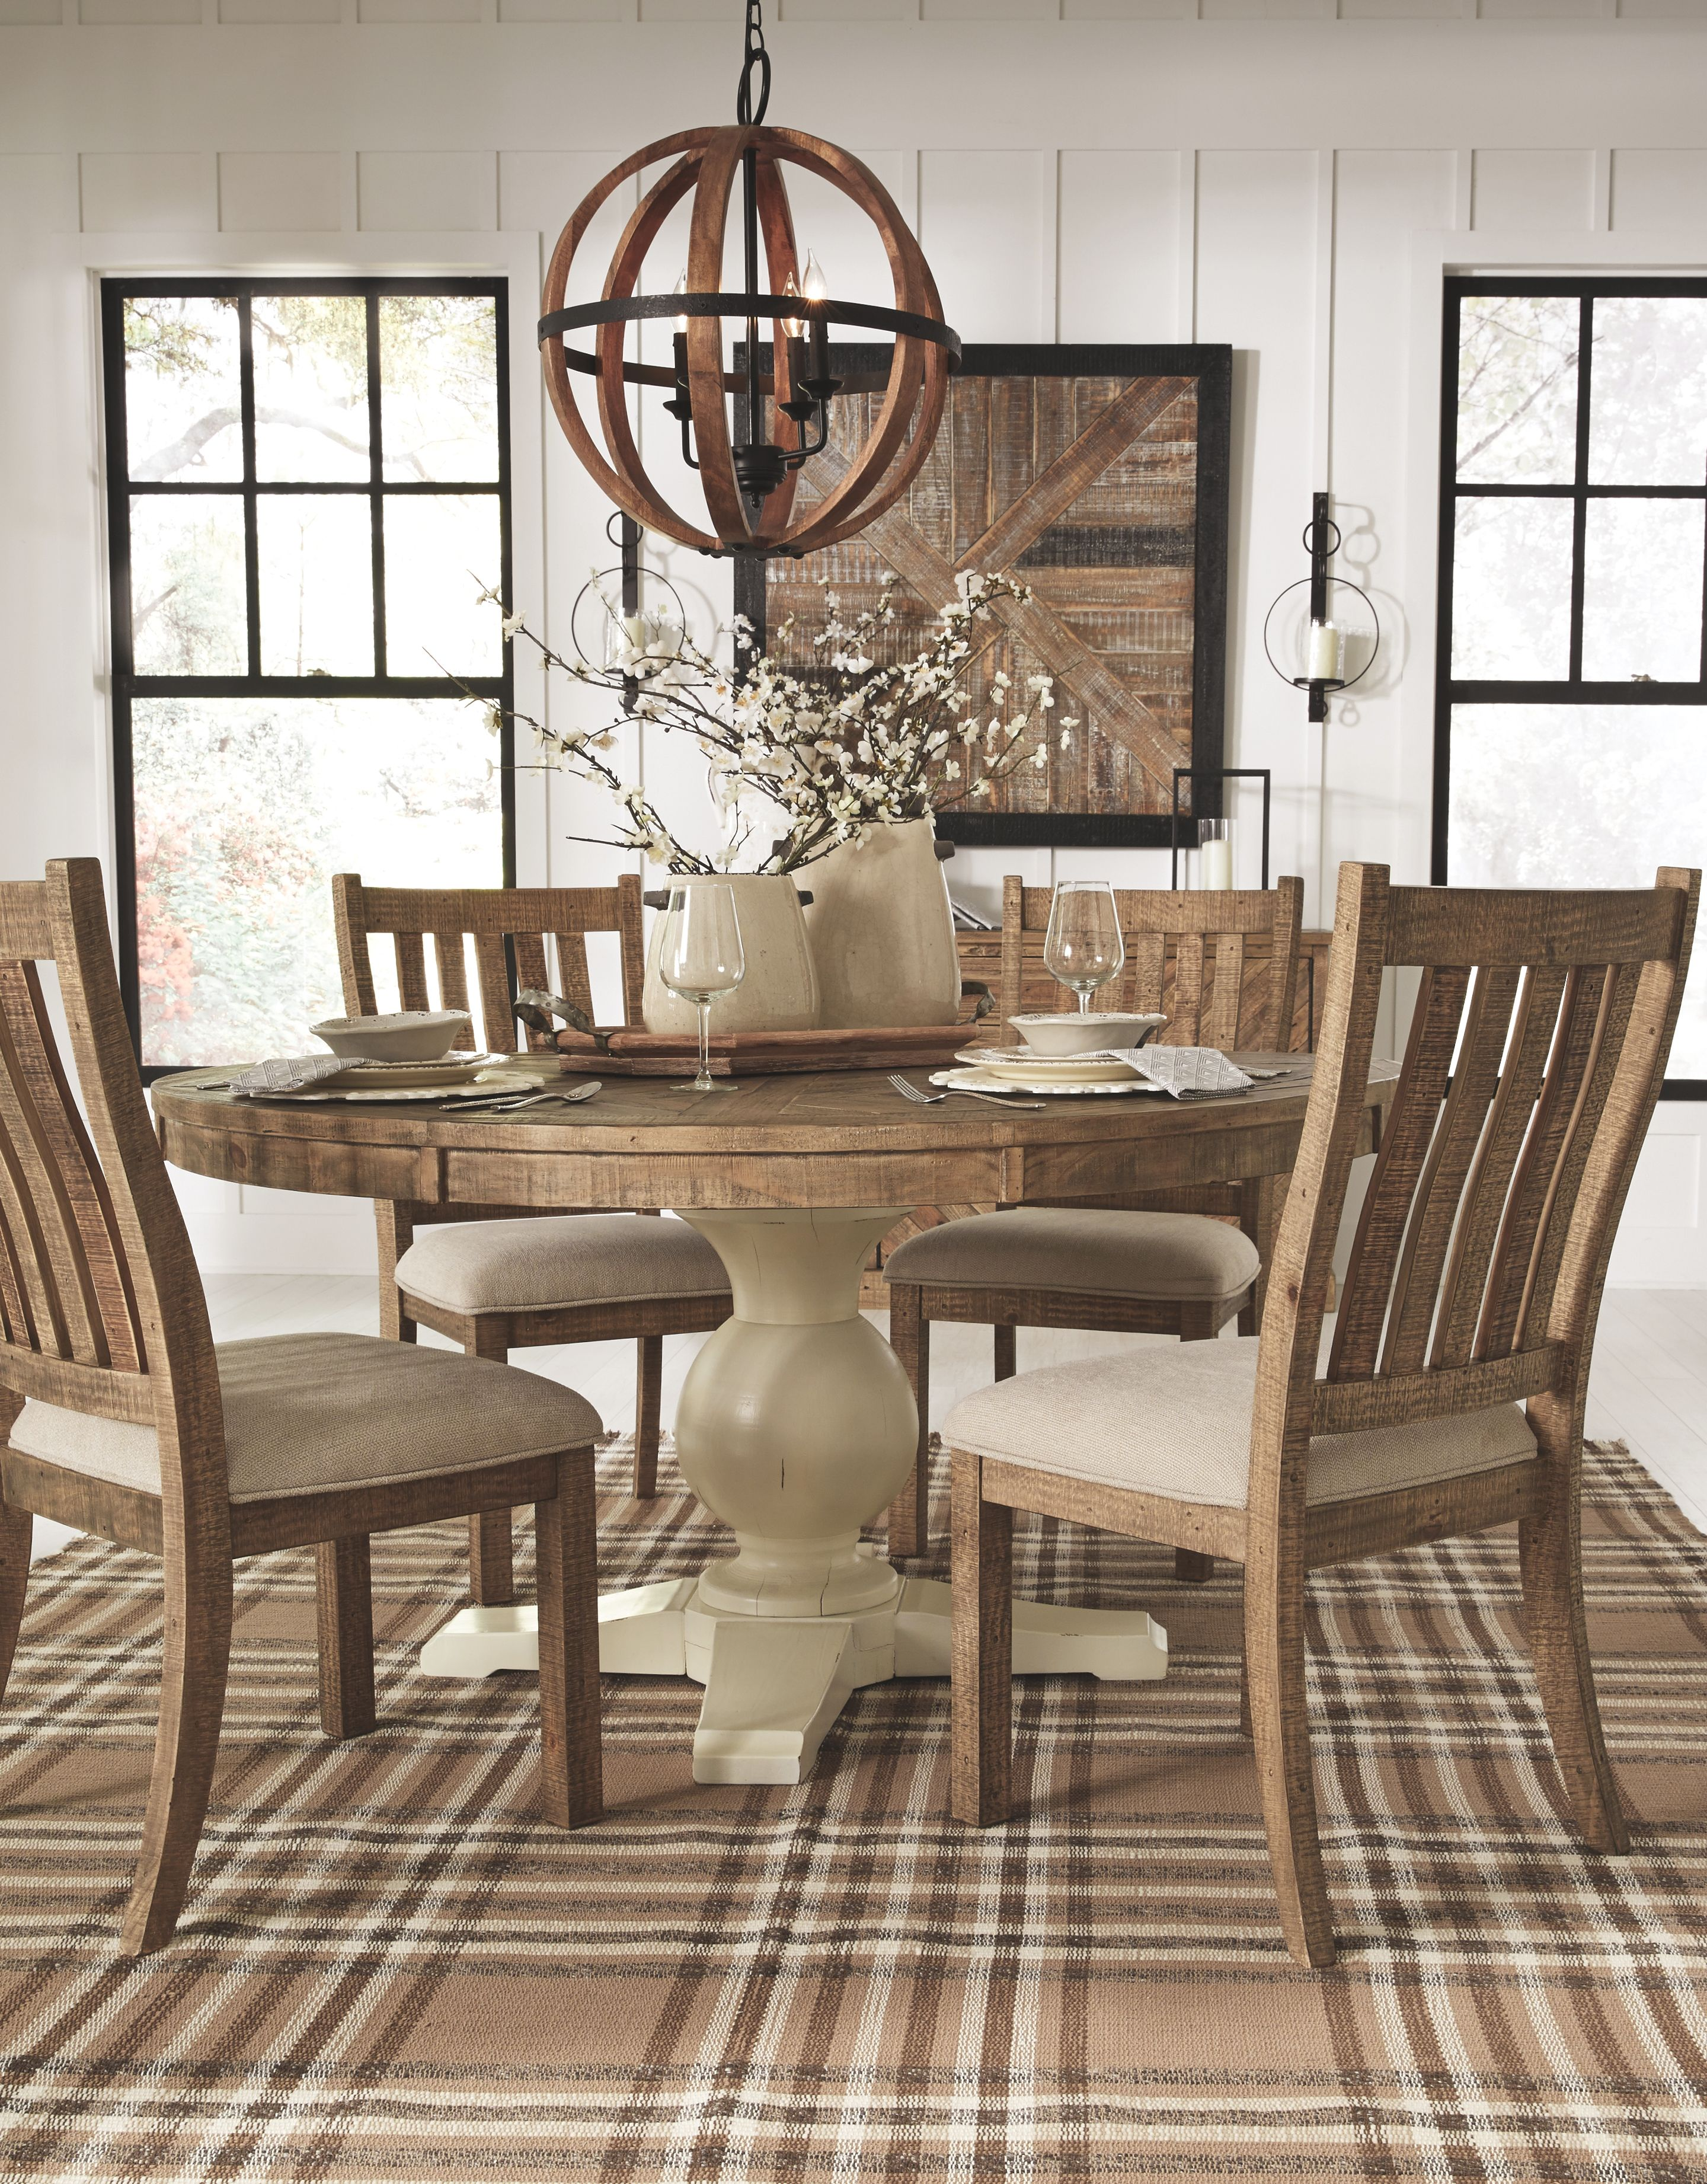 Dining Room Chair Sets Grindleburg Dining Room Chair Set Of 2 In 2019 Products